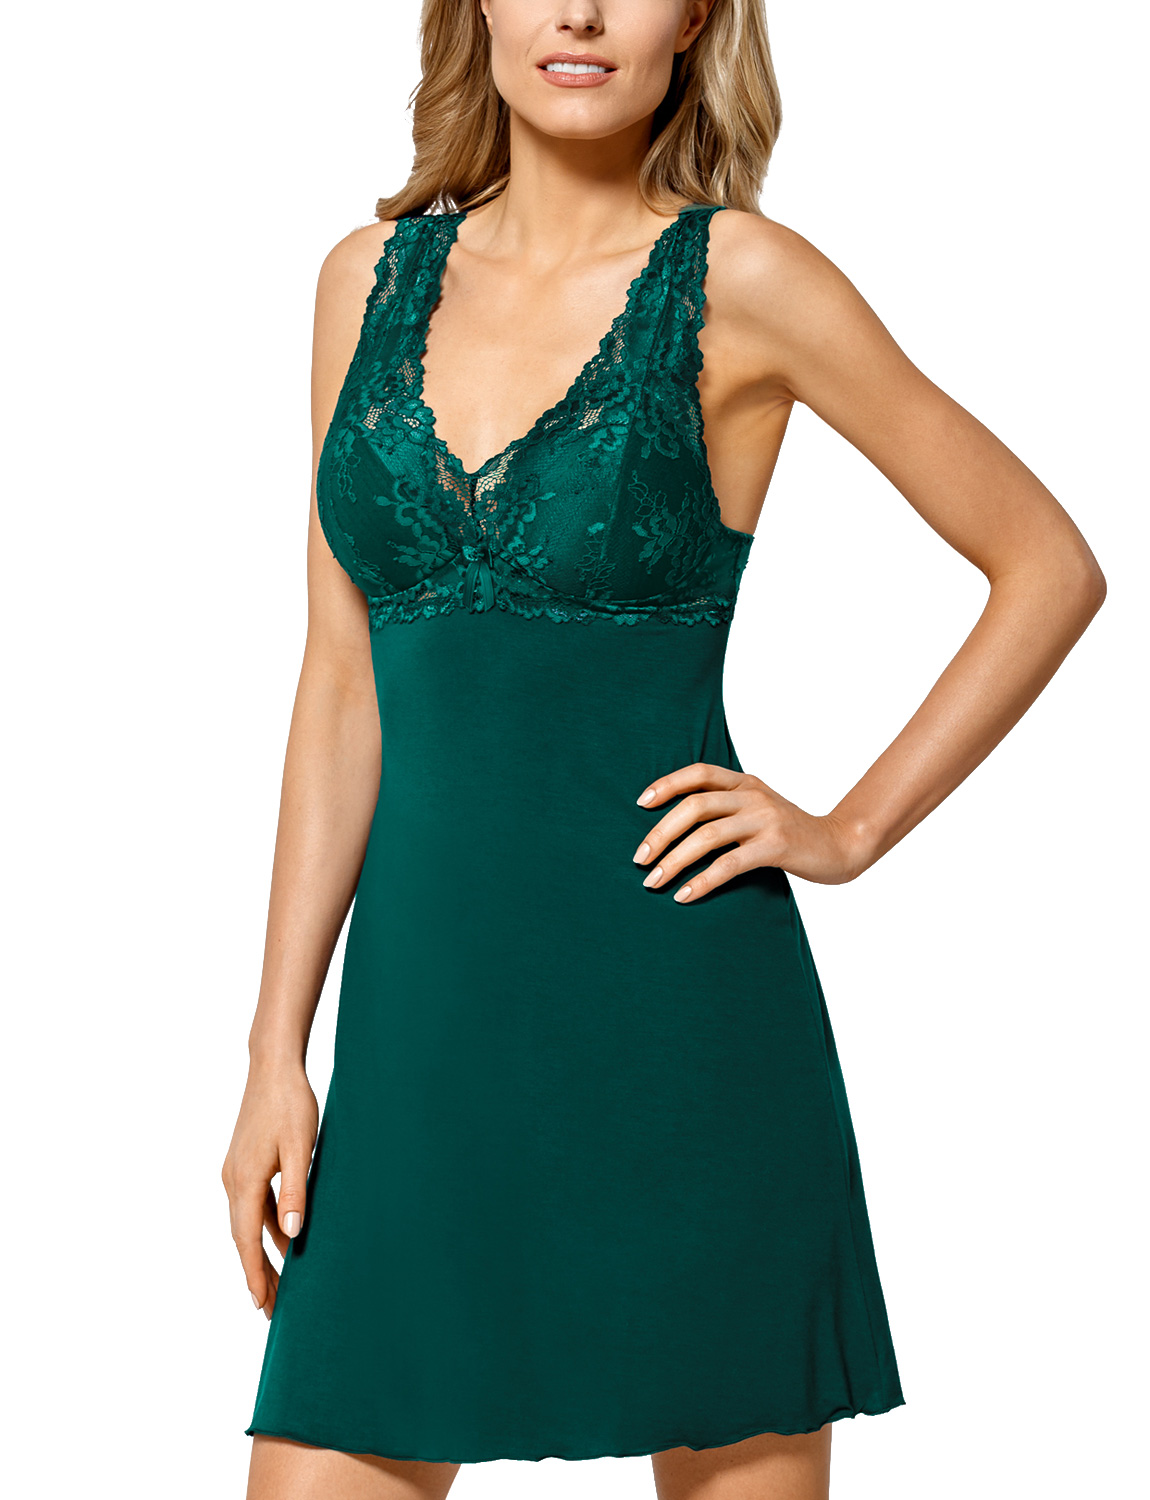 made in EU Nipplex Bona women/'s chemise lacy padded cups non removable straps